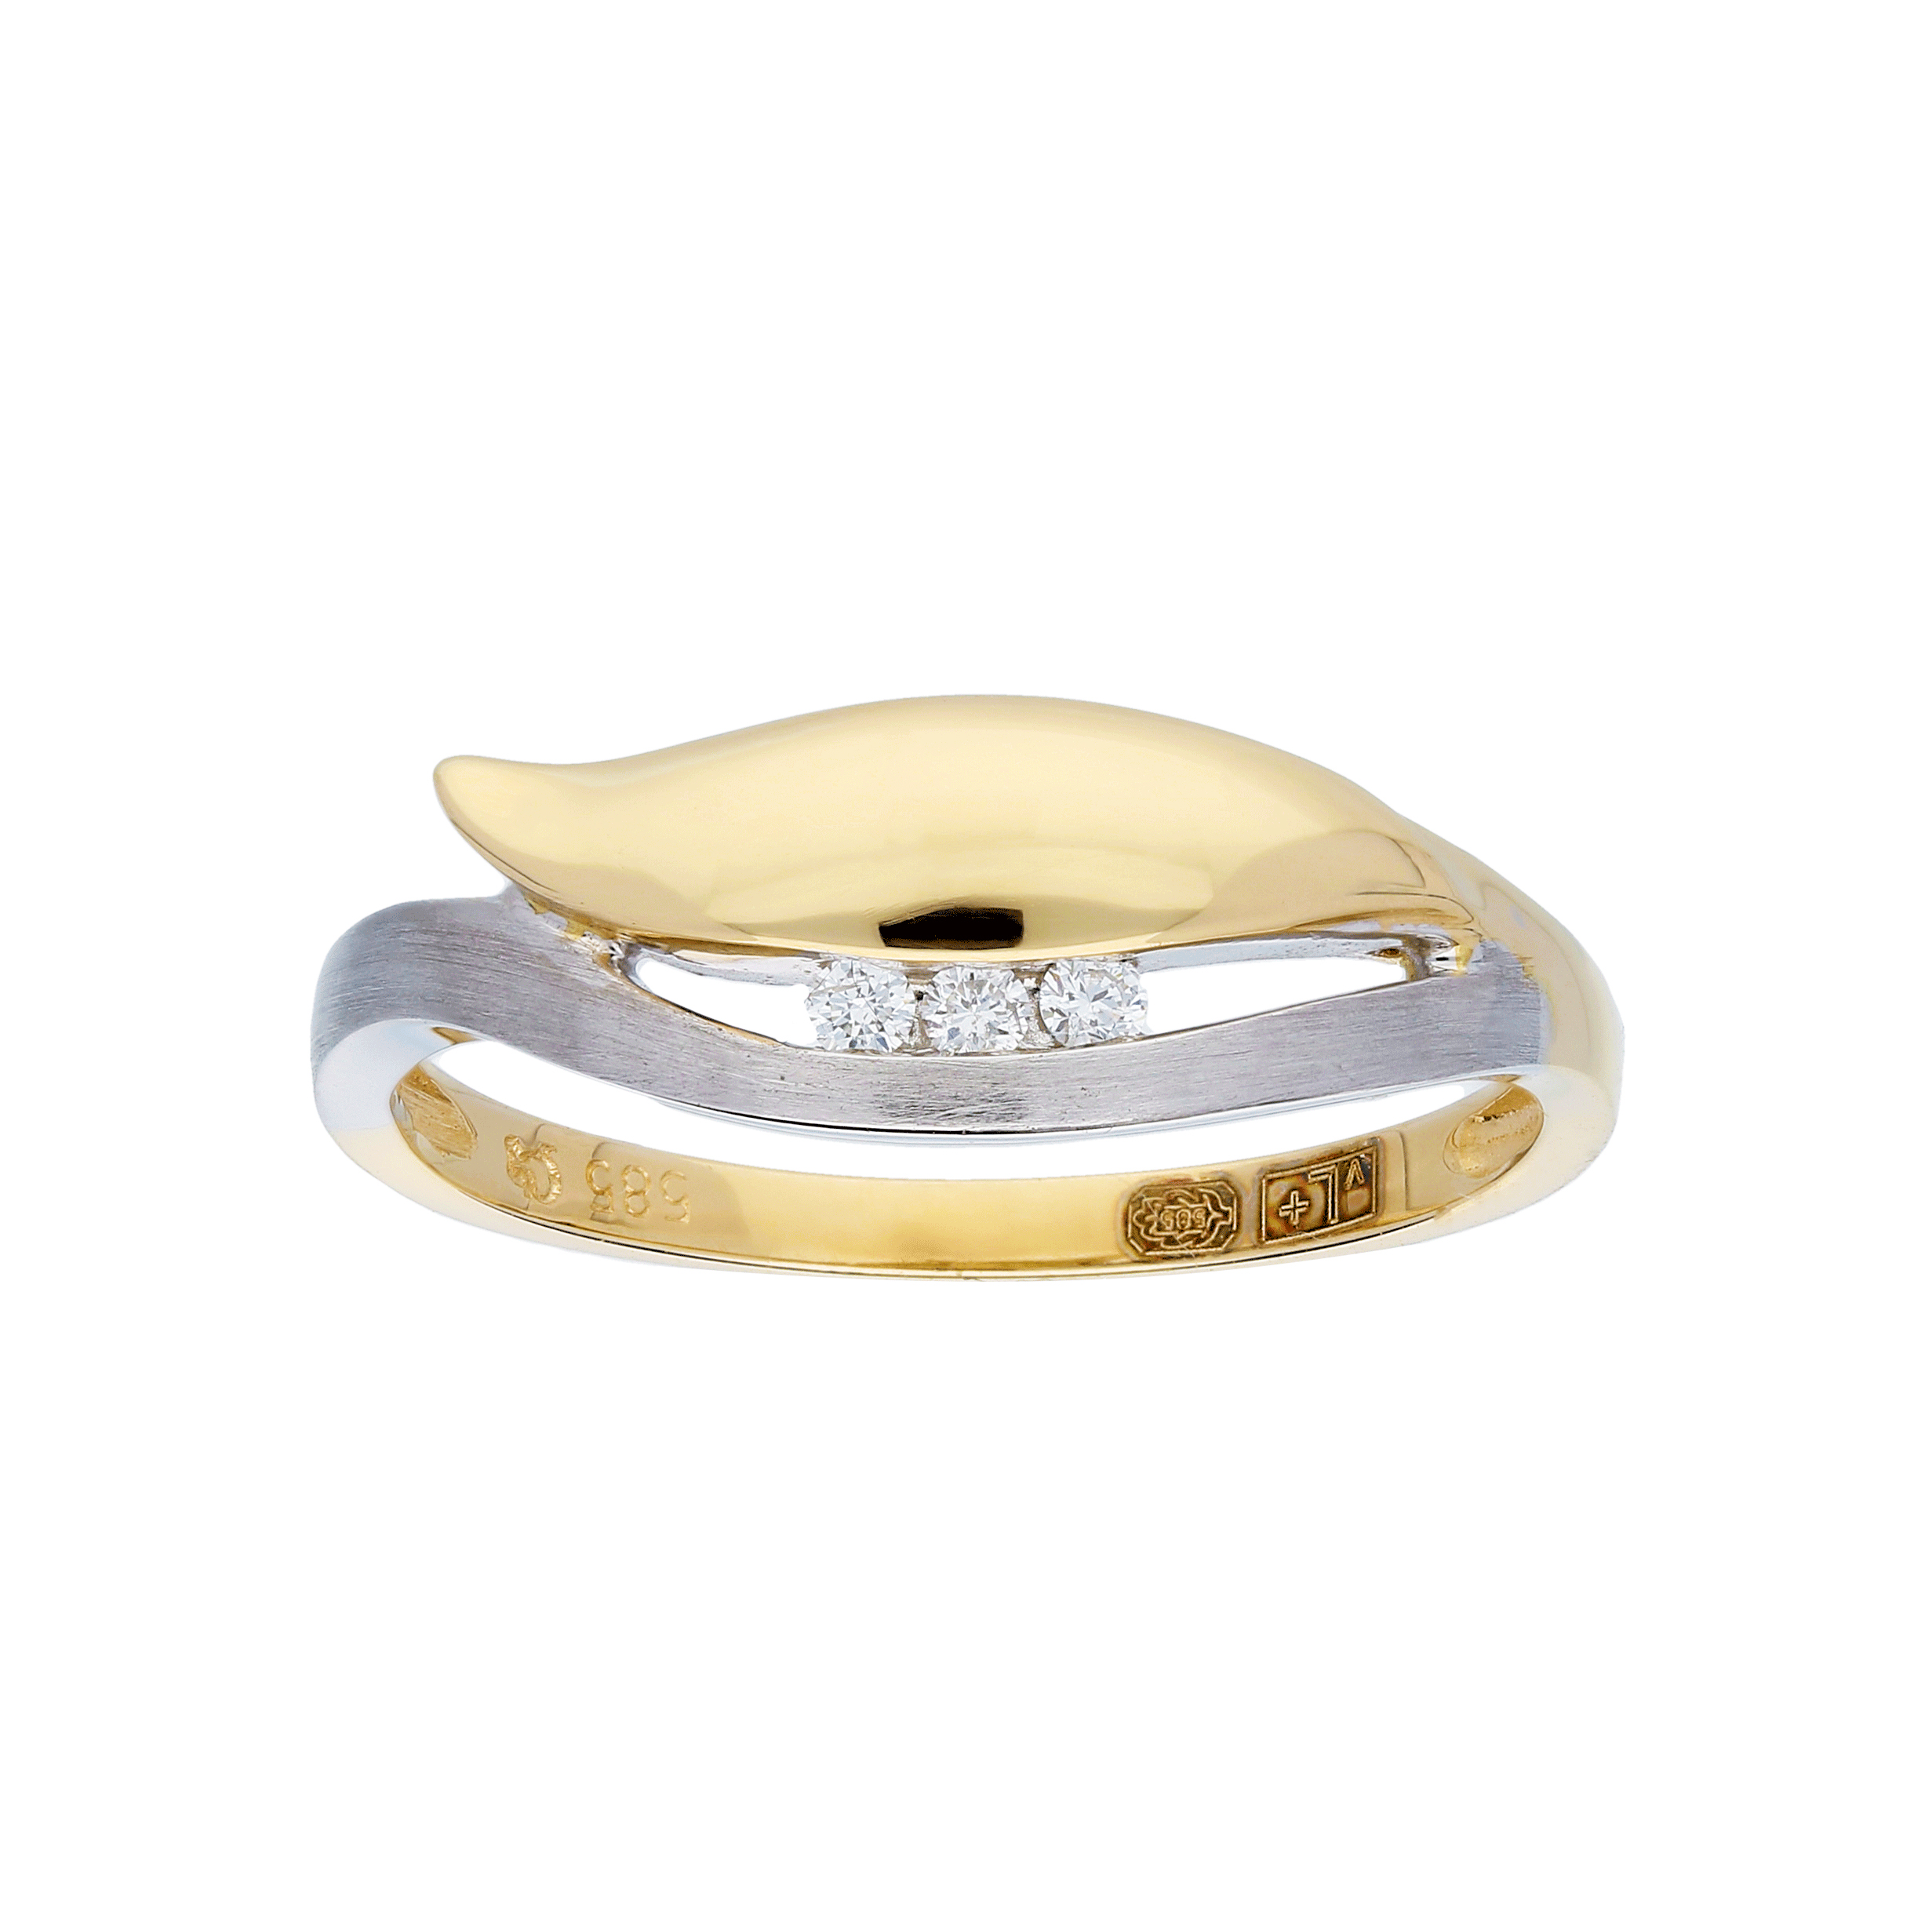 Glow Gouden Ring Bicolor Mat Glanzend Diamant 3 0.045ct G si 214.5252.50